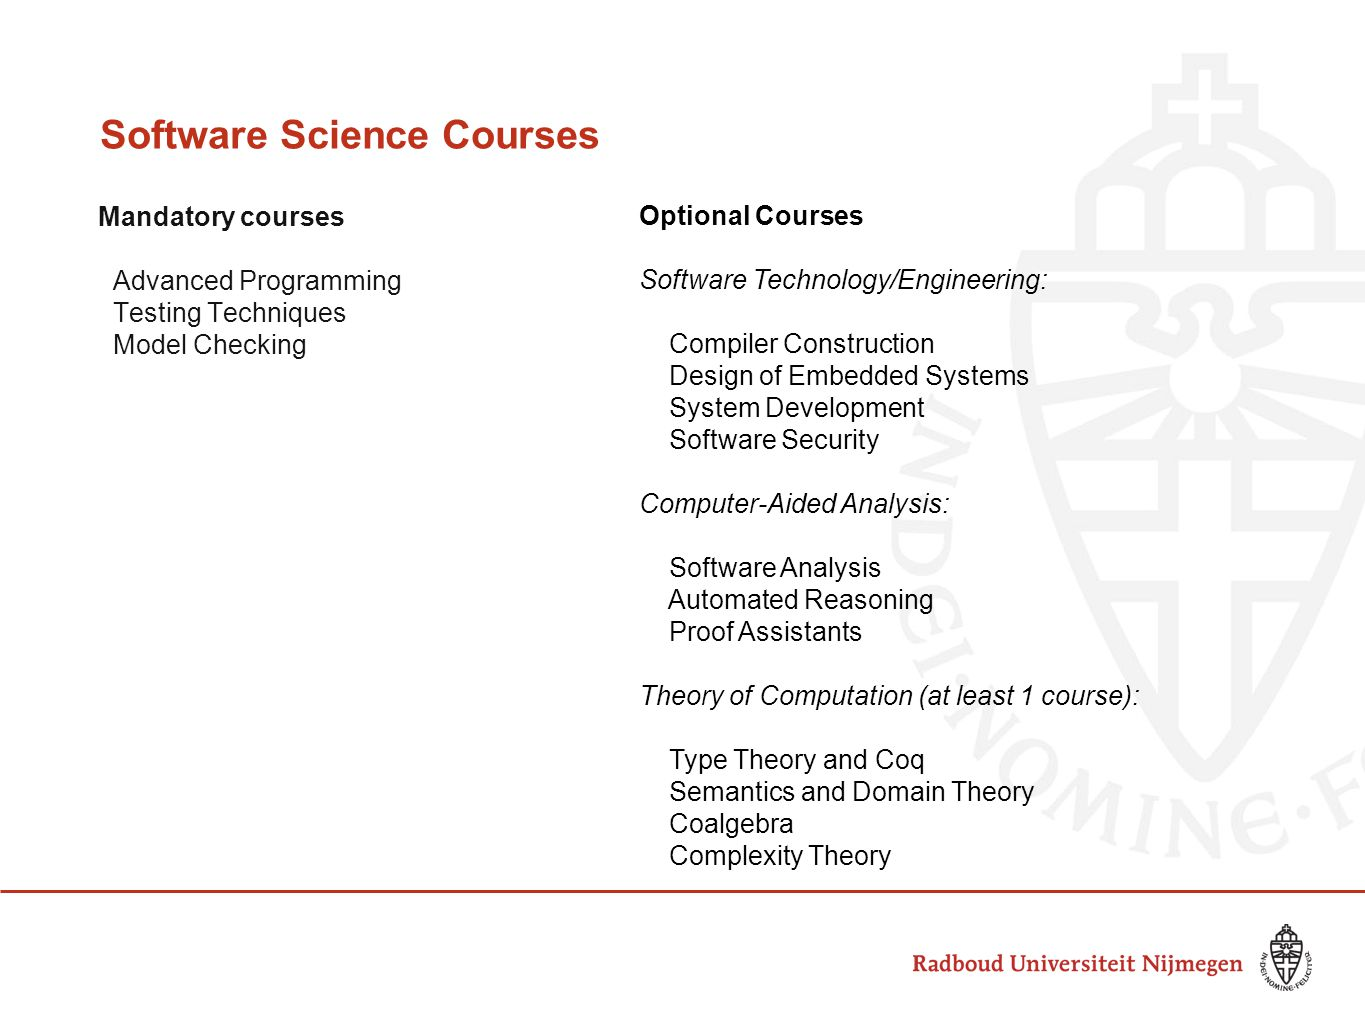 Software Science Courses Mandatory courses Advanced Programming Testing Techniques Model Checking Optional Courses Software Technology/Engineering: Compiler Construction Design of Embedded Systems System Development Software Security Computer-Aided Analysis: Software Analysis Automated Reasoning Proof Assistants Theory of Computation (at least 1 course): Type Theory and Coq Semantics and Domain Theory Coalgebra Complexity Theory